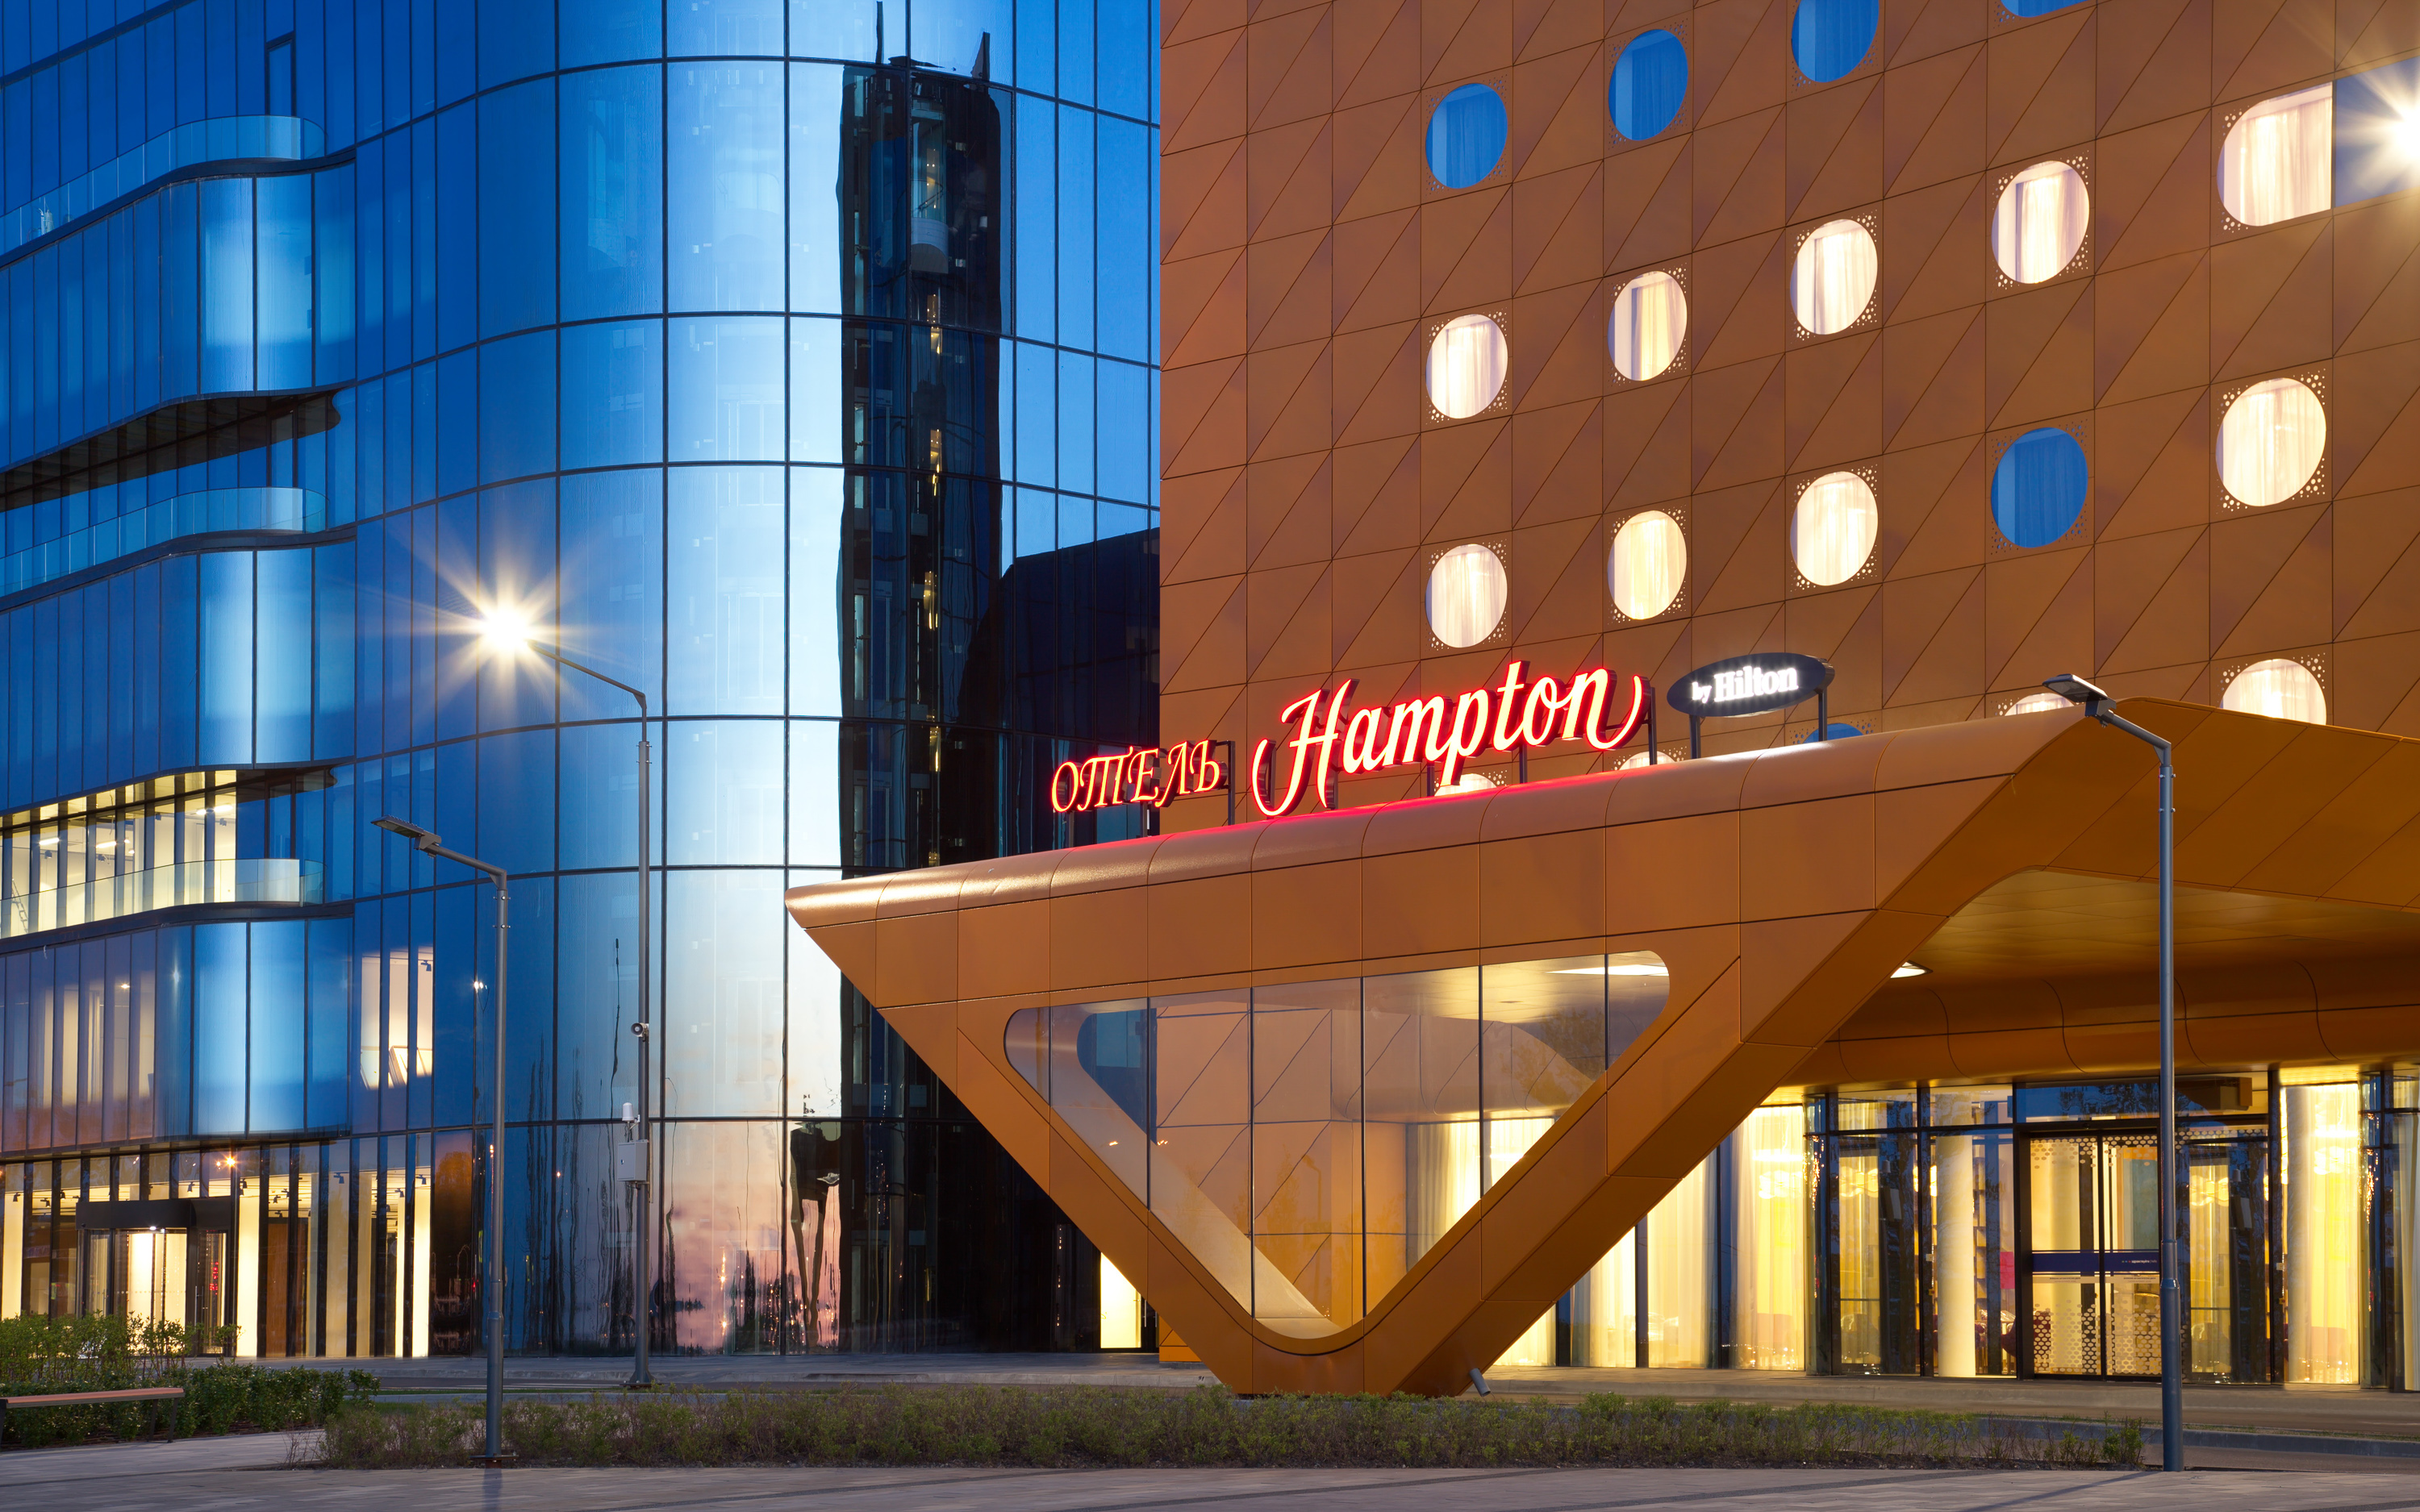 Hampton by Hilton Expoforum